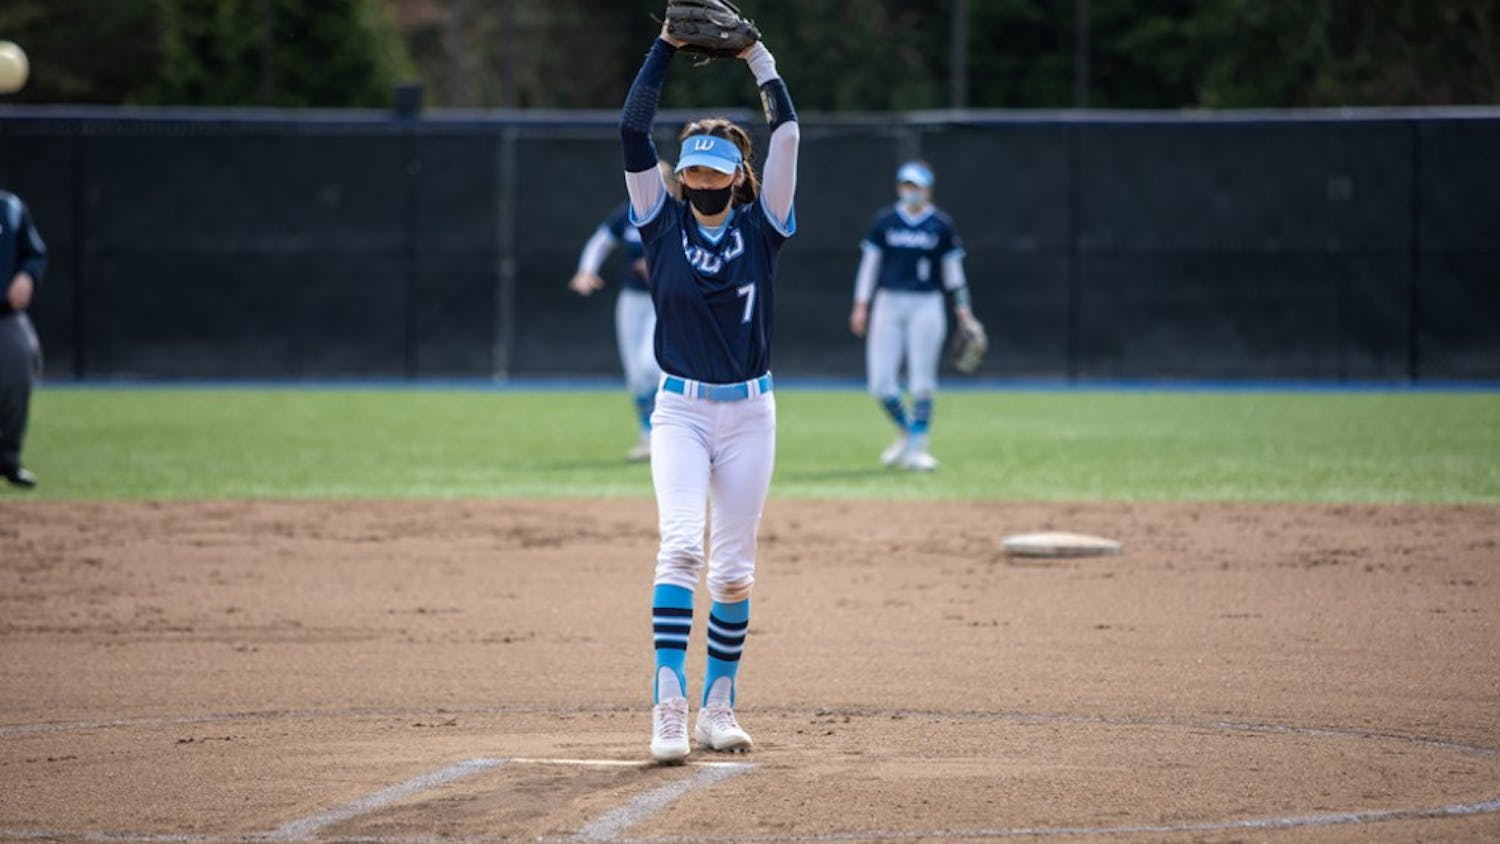 Senior Viking athlete Anna Kasner pitching in a game against Saint Martin's University on March 21, 2021. Kasner led Viking softball to win the 2021 GNAC Championship. // Photo courtesy of WWU Athletics